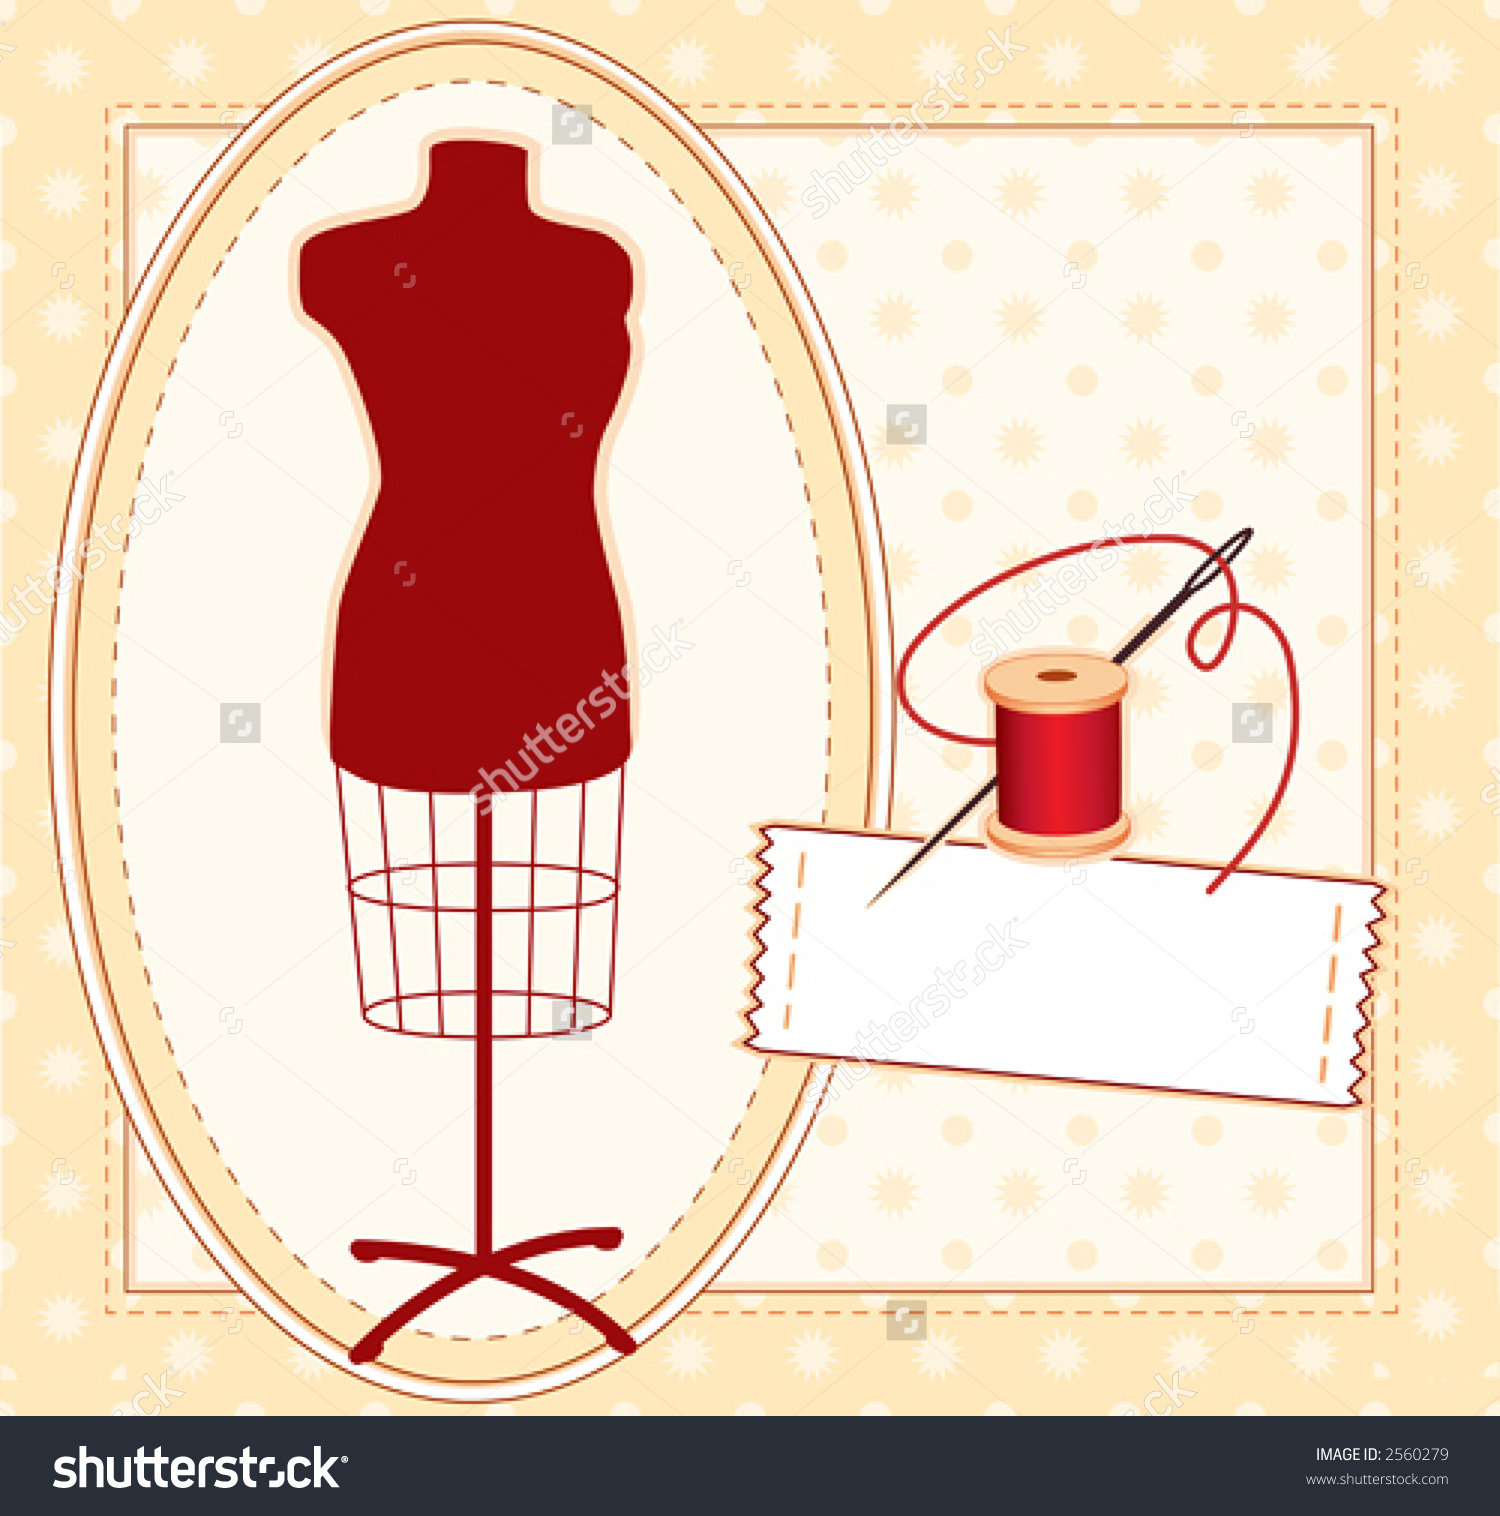 Fashion Model Sewing Label Copy Space Stock Vector 2560279.